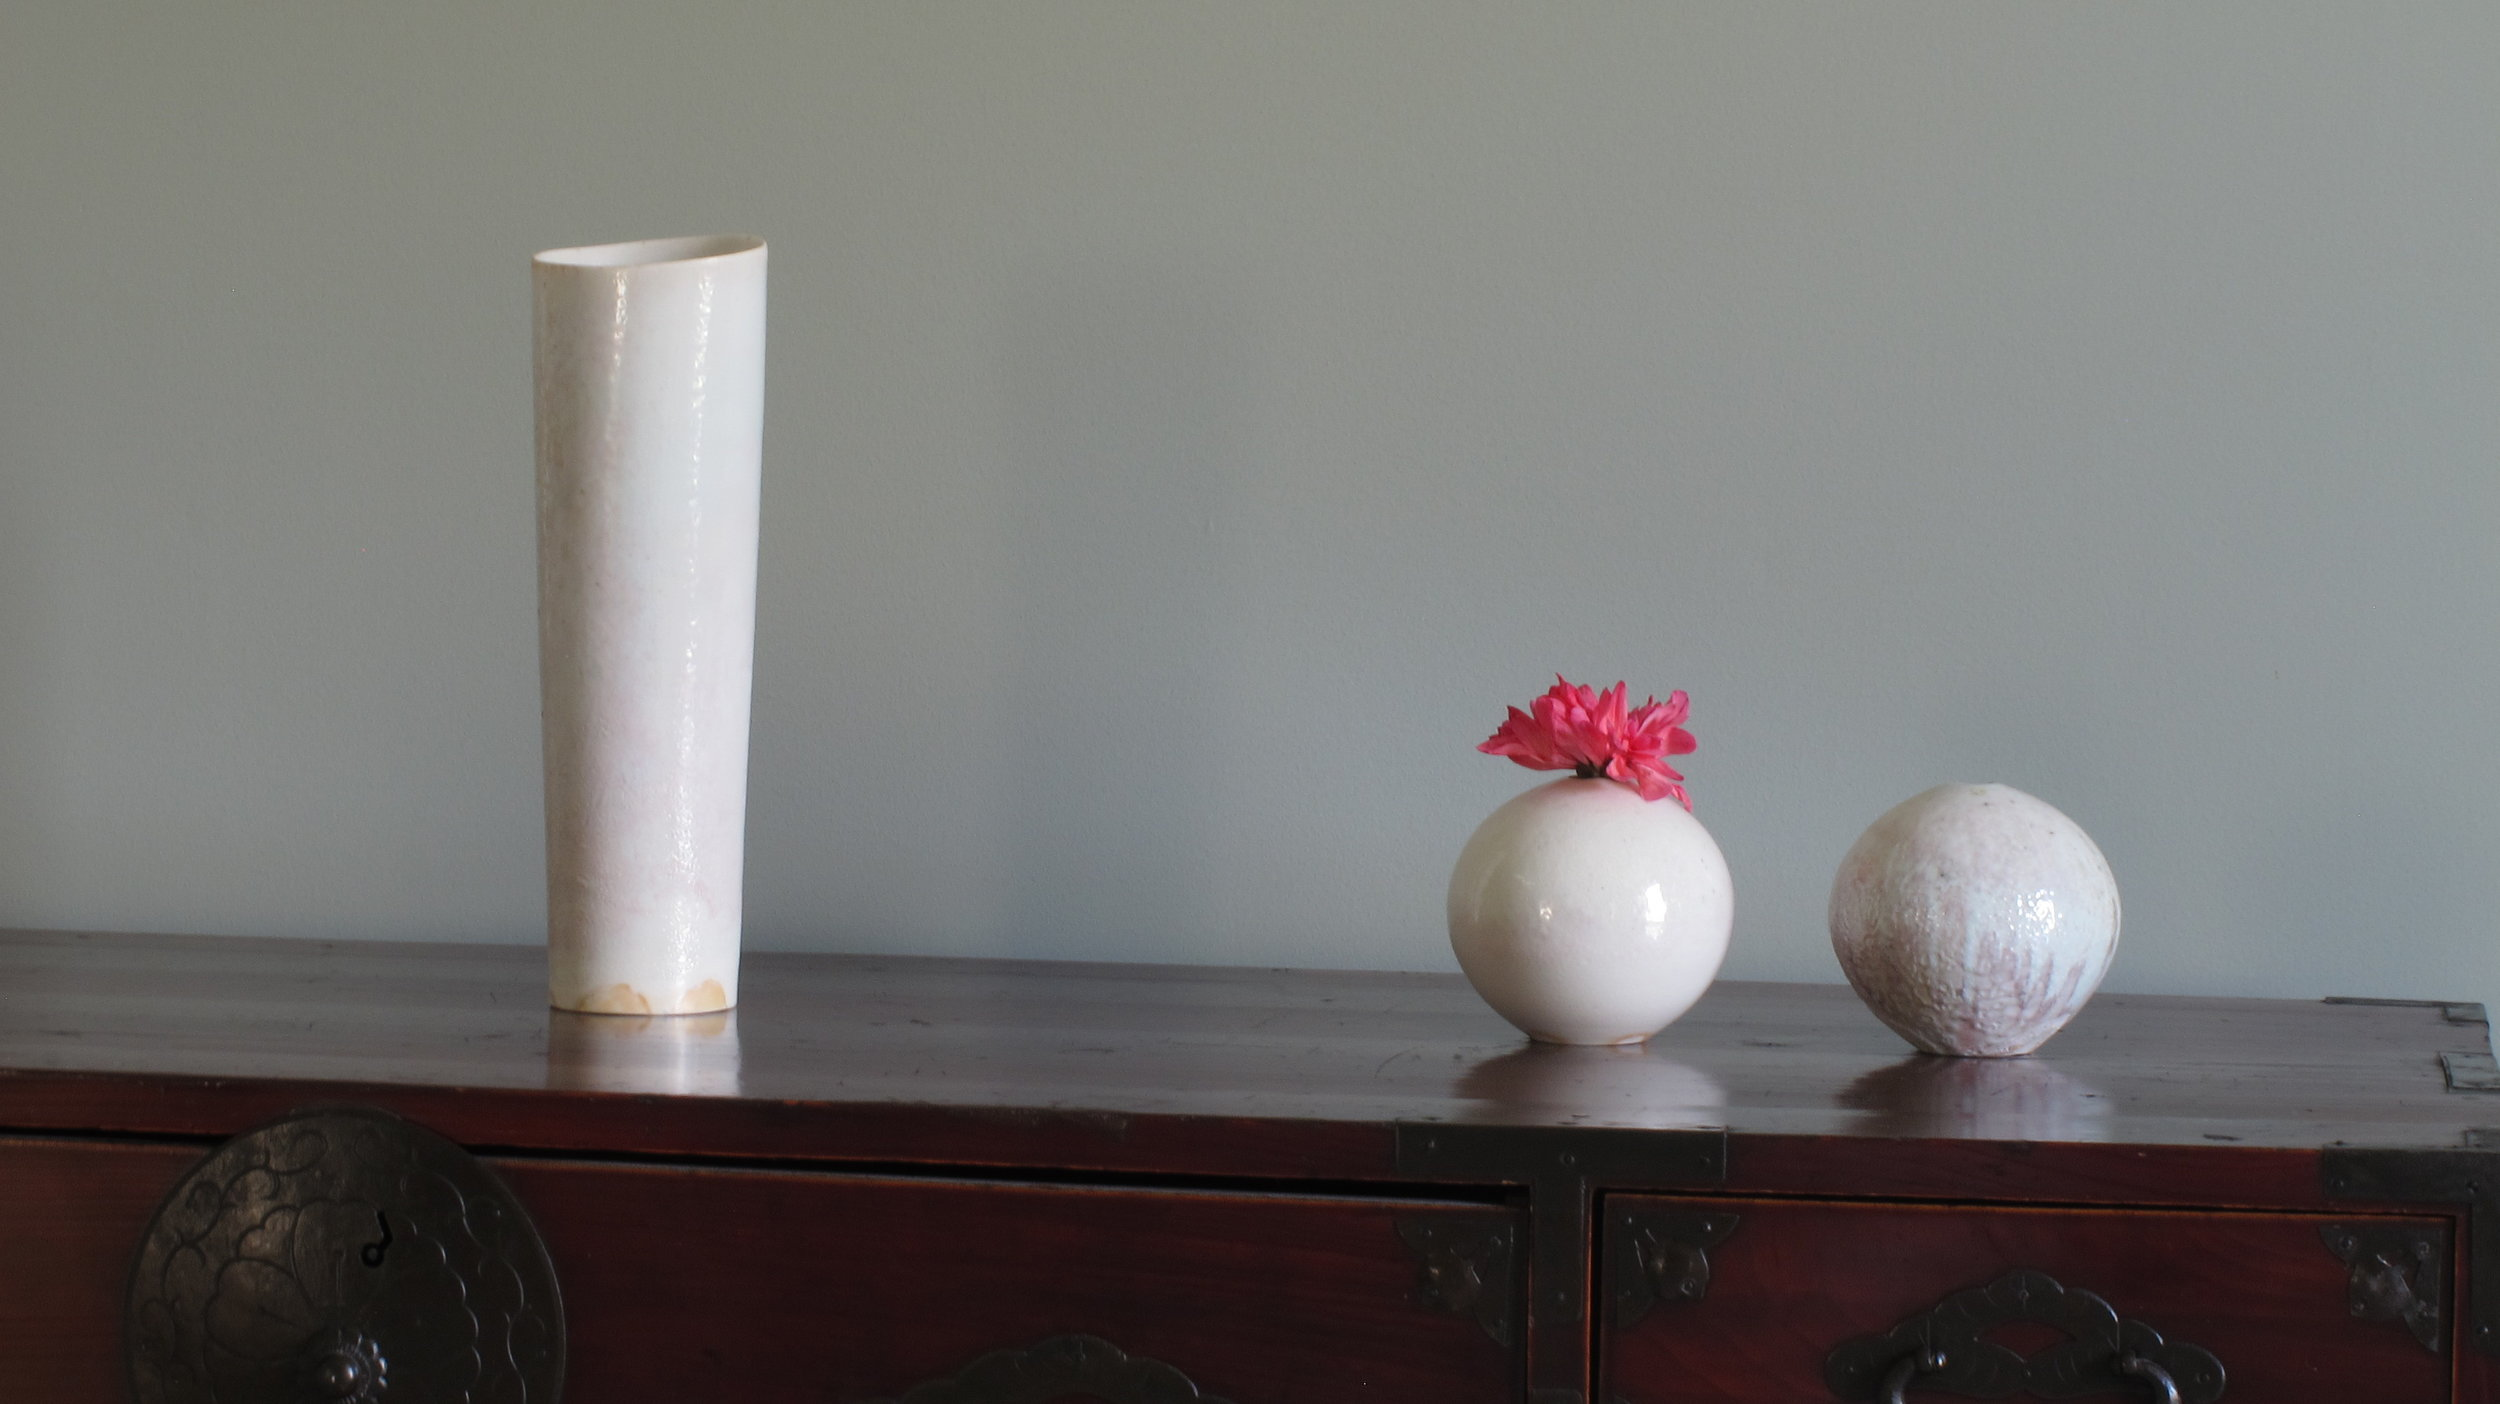 Wood Fired Porcelain Vases by T. Tabuchi